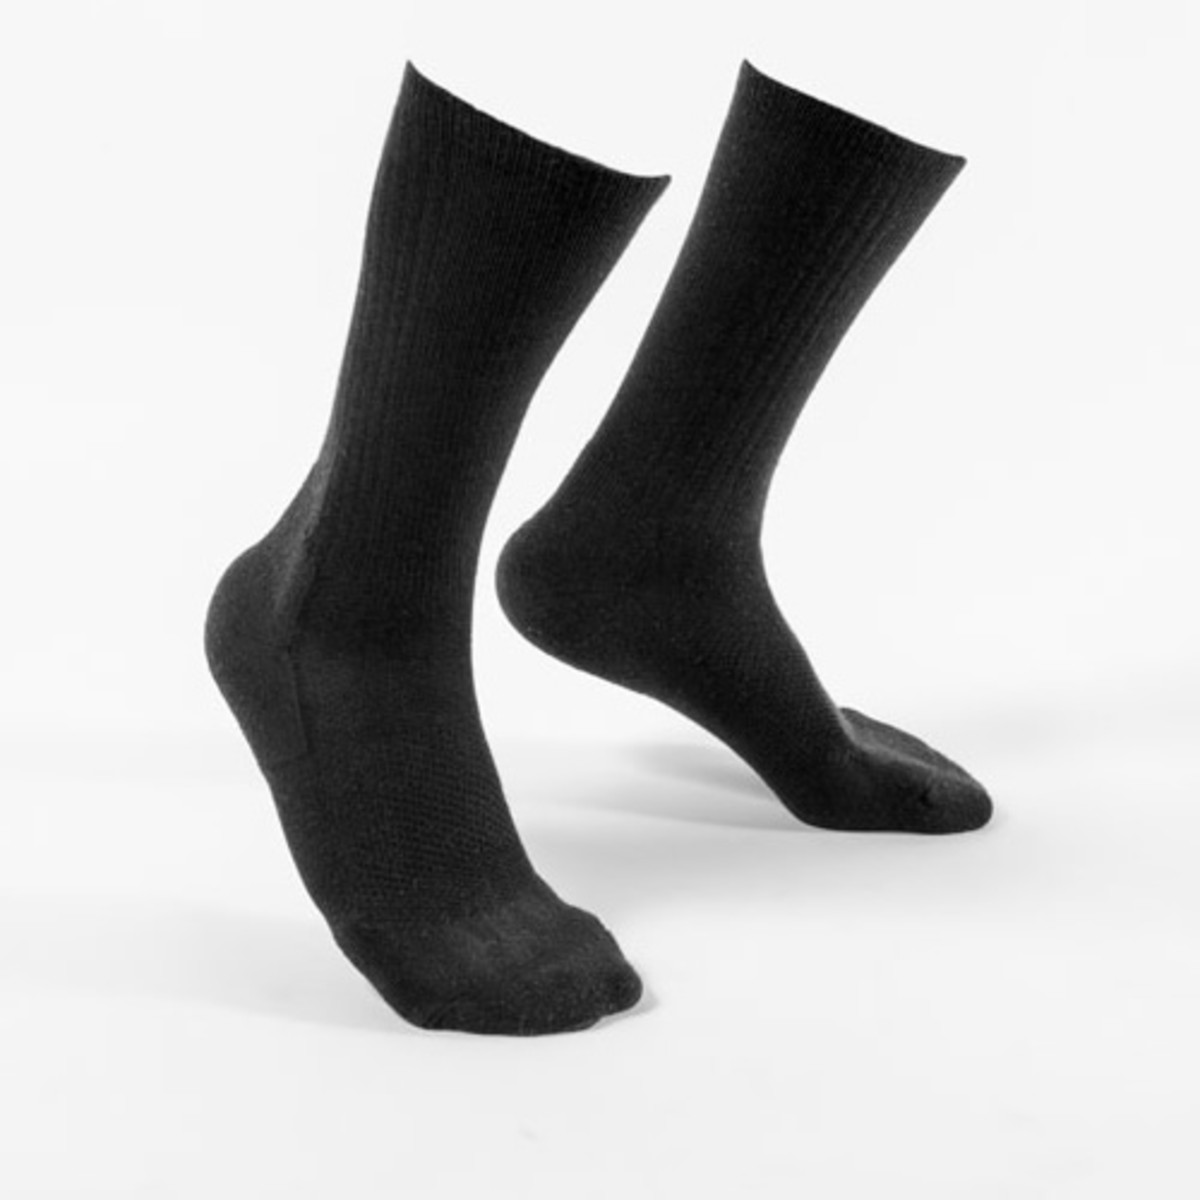 outliersocks